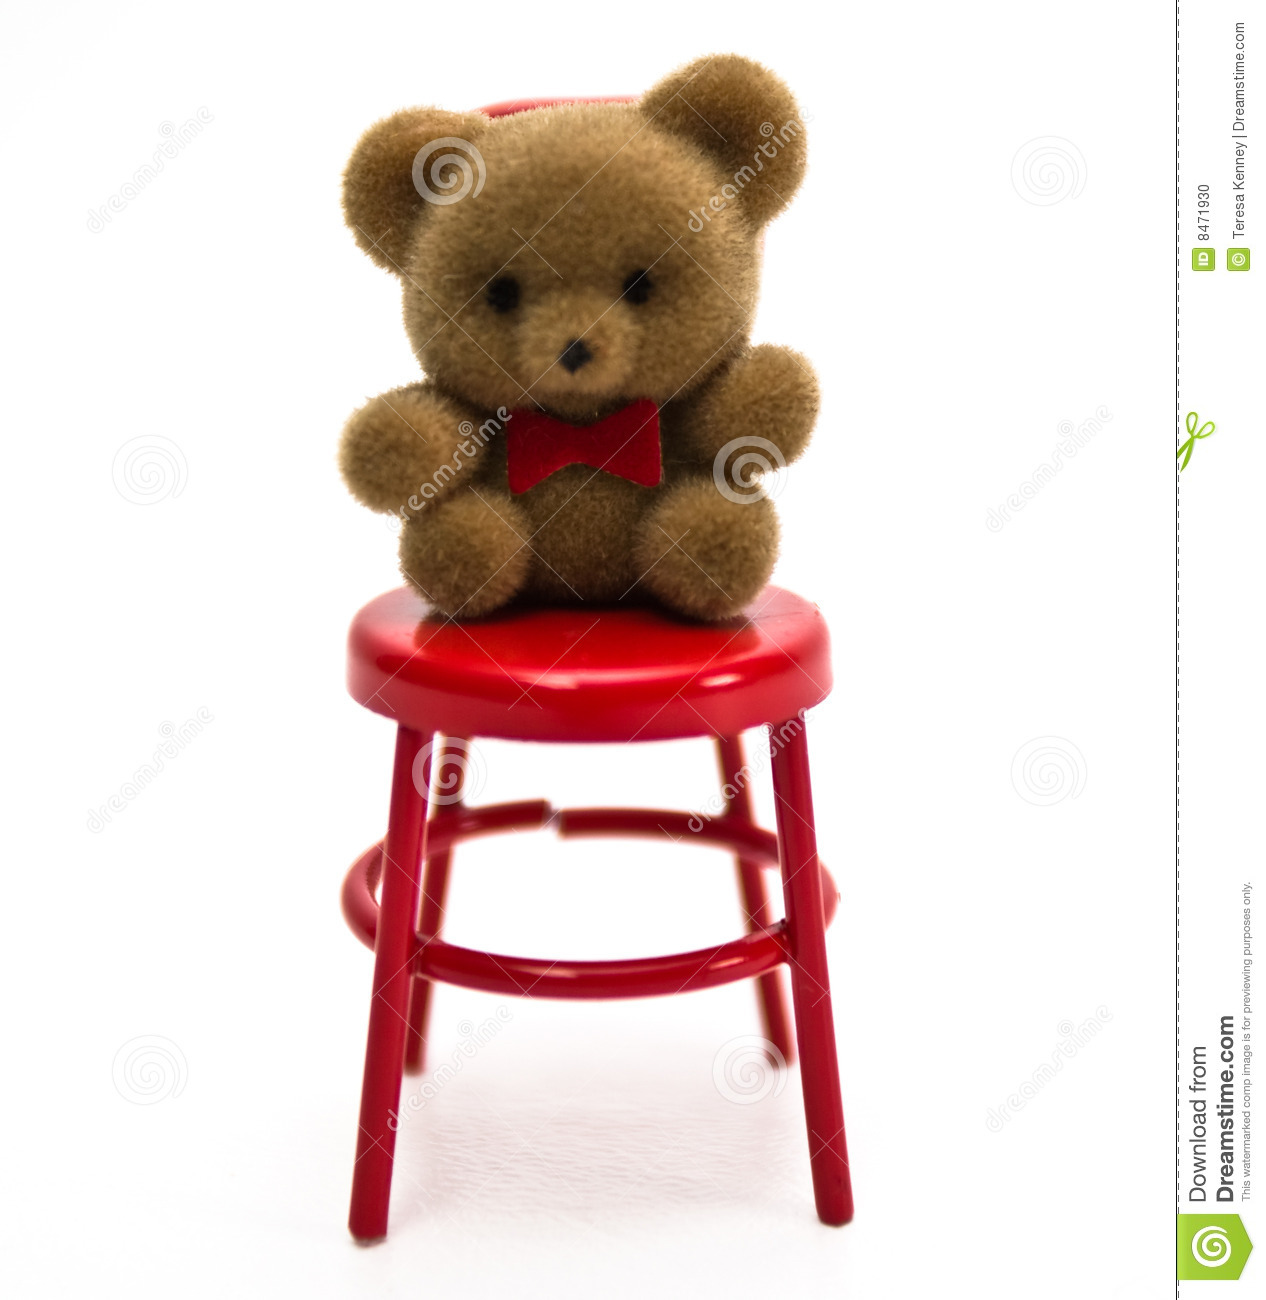 mini bear on chair stock photo image 8471930. Black Bedroom Furniture Sets. Home Design Ideas